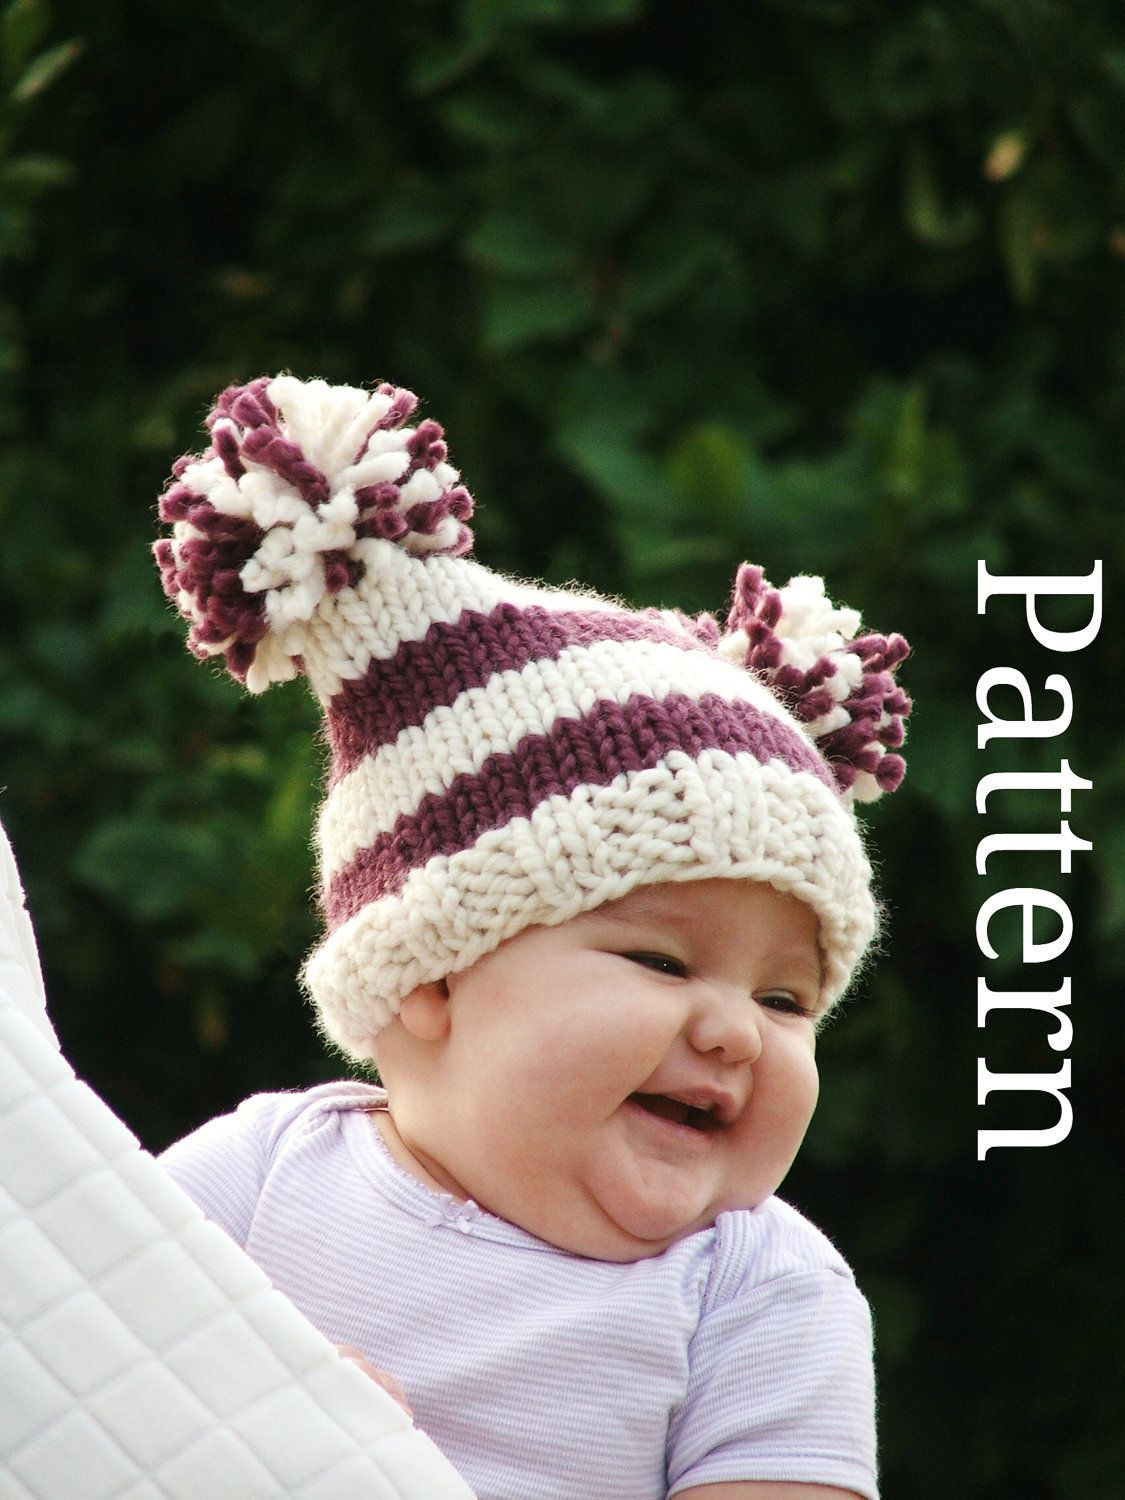 Baby hat patterns Baby knitting patterns Baby knit baby patterns ...